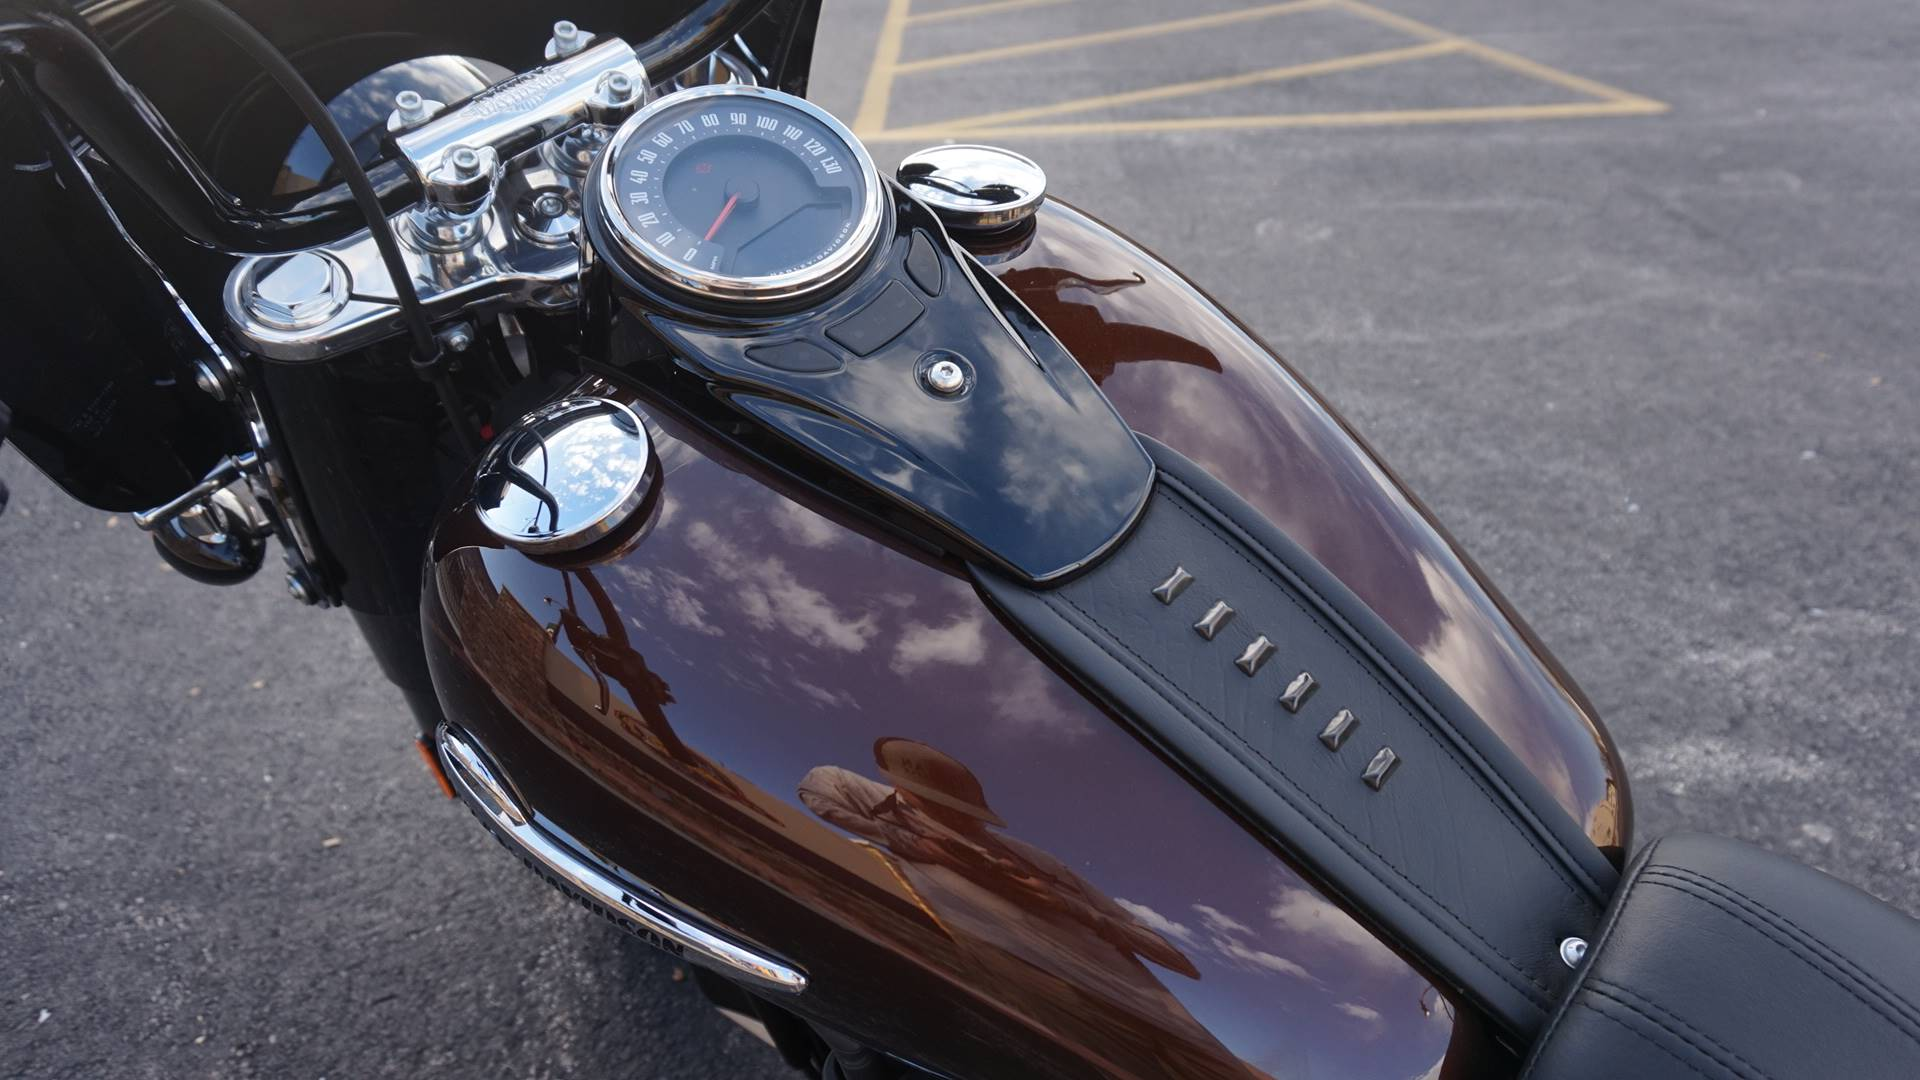 2019 Harley-Davidson Heritage Classic 107 in Racine, Wisconsin - Photo 16